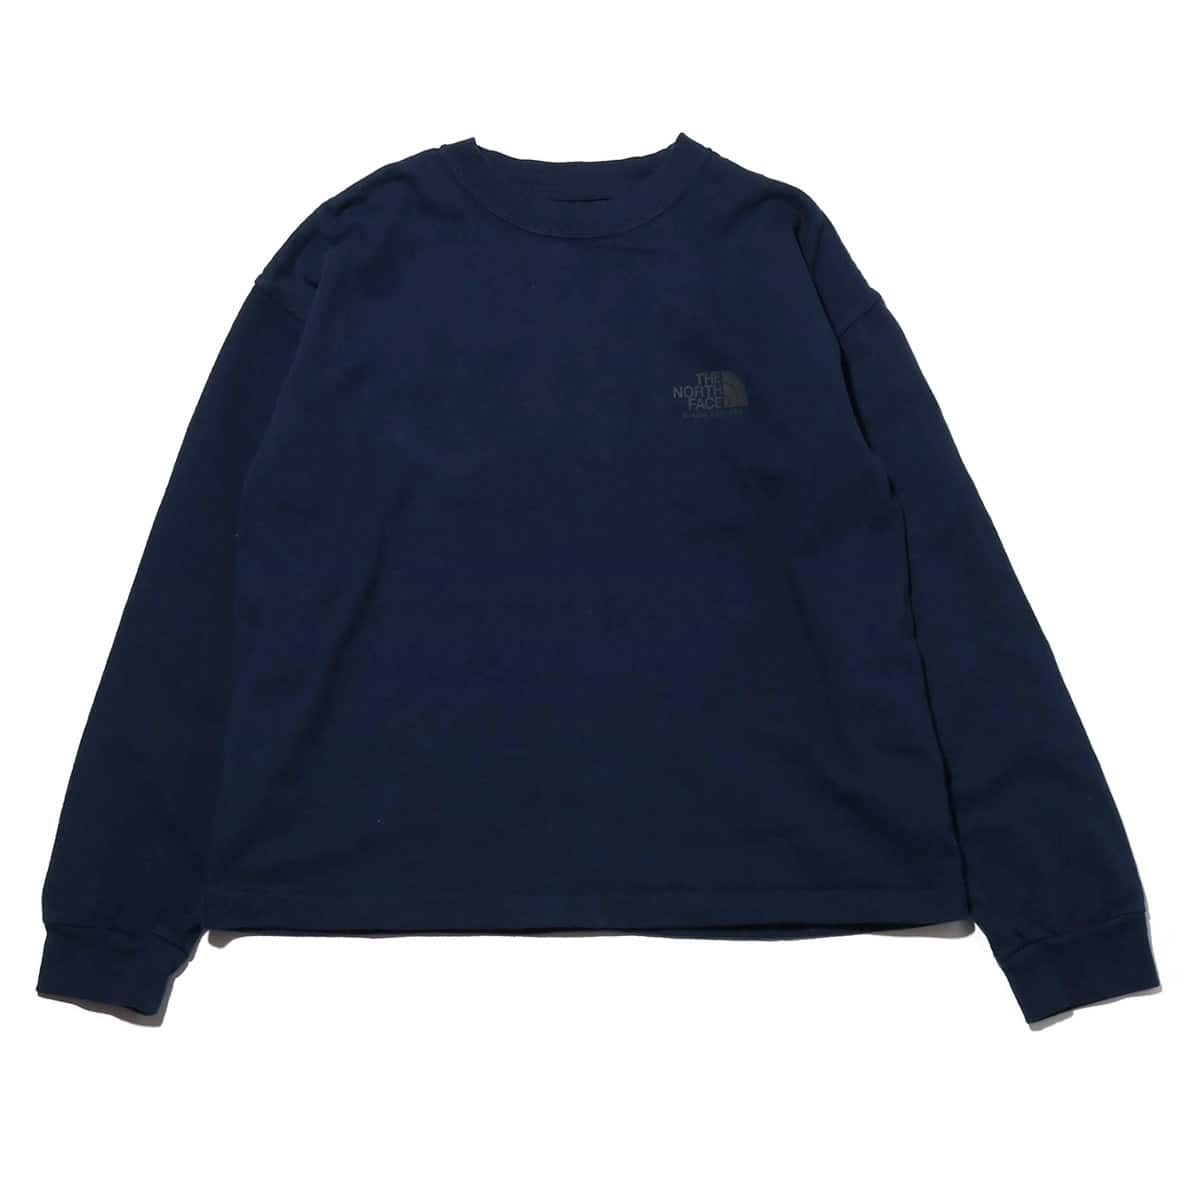 THE NORTH FACE PURPLE LABEL 8oz L/S LOGO TEE NAVY 19SS-I_photo_large